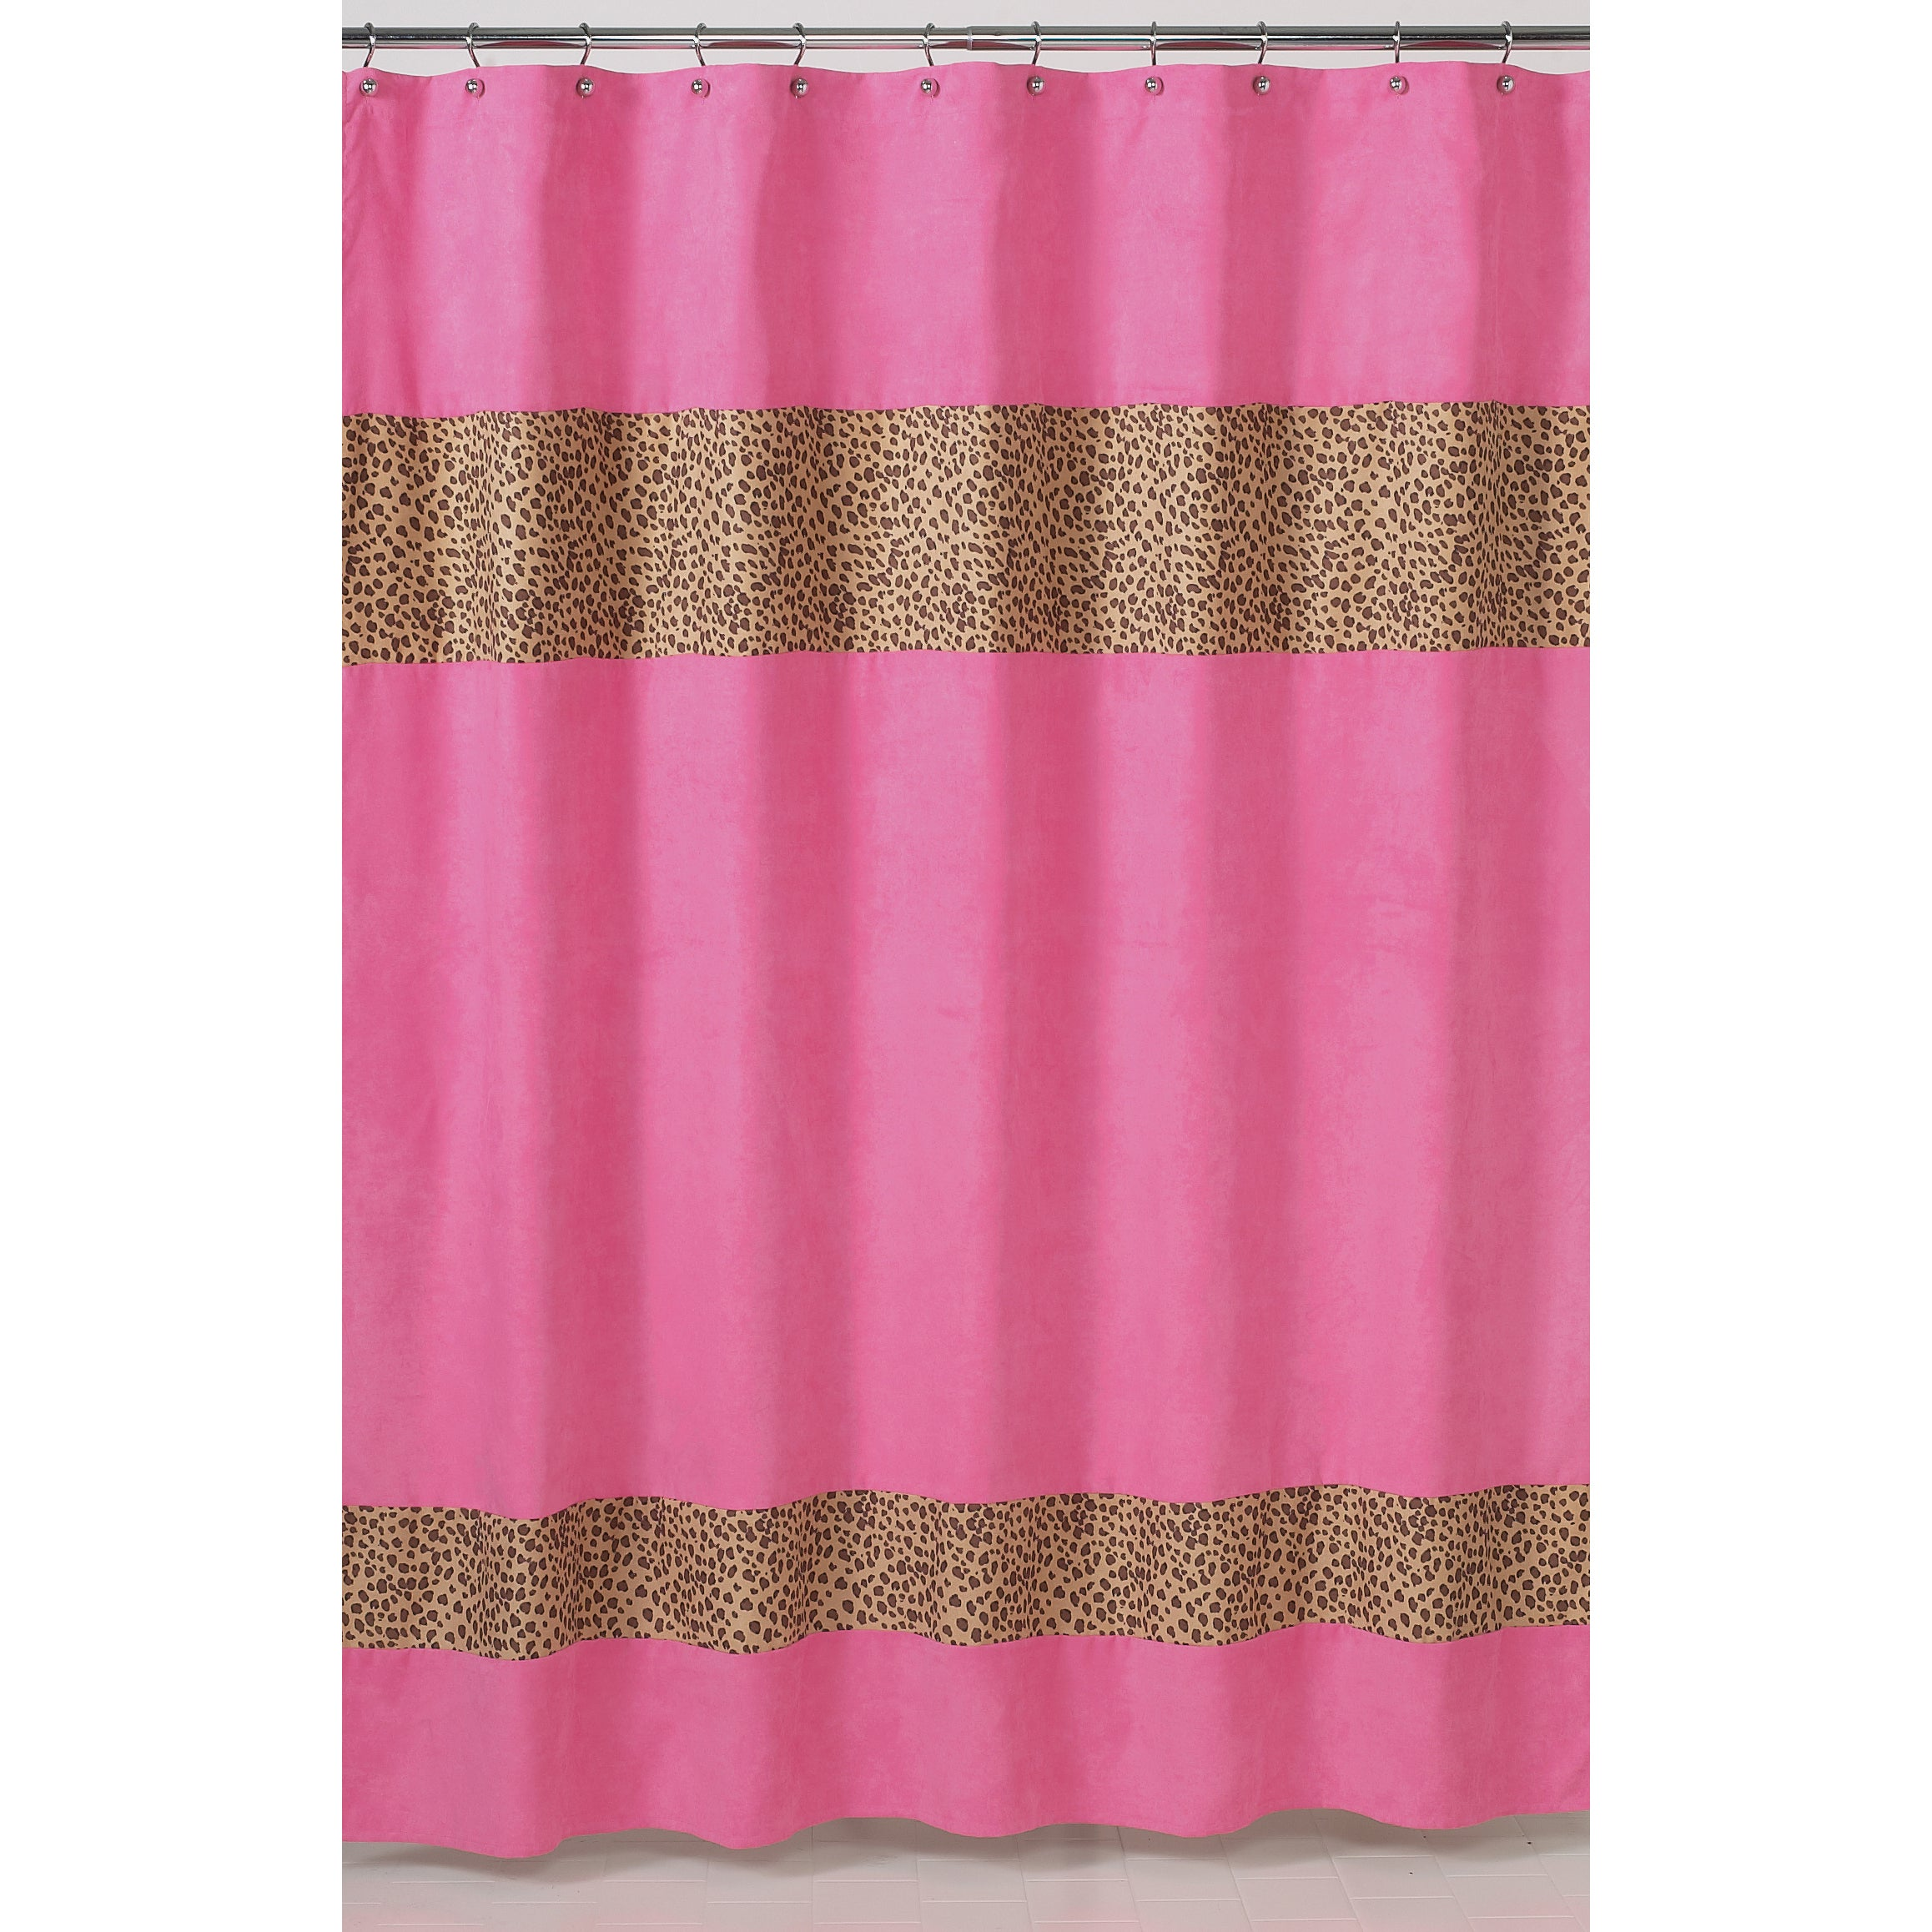 Orange And Brown Curtains Red Wine Shower Curtain